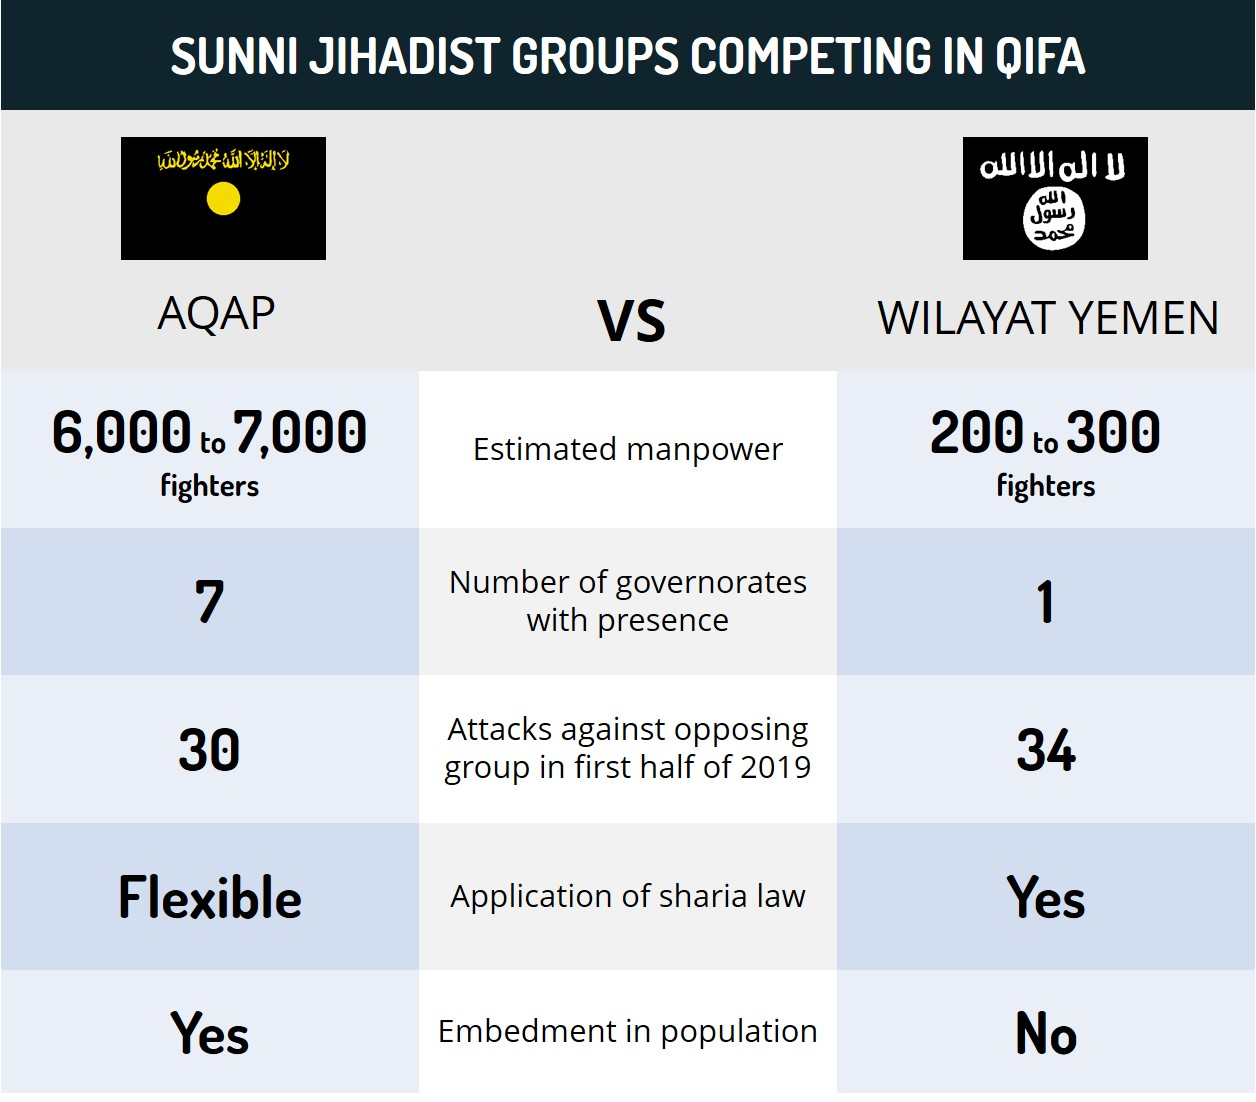 Sunni Jihadist Groups Competing in Qifa